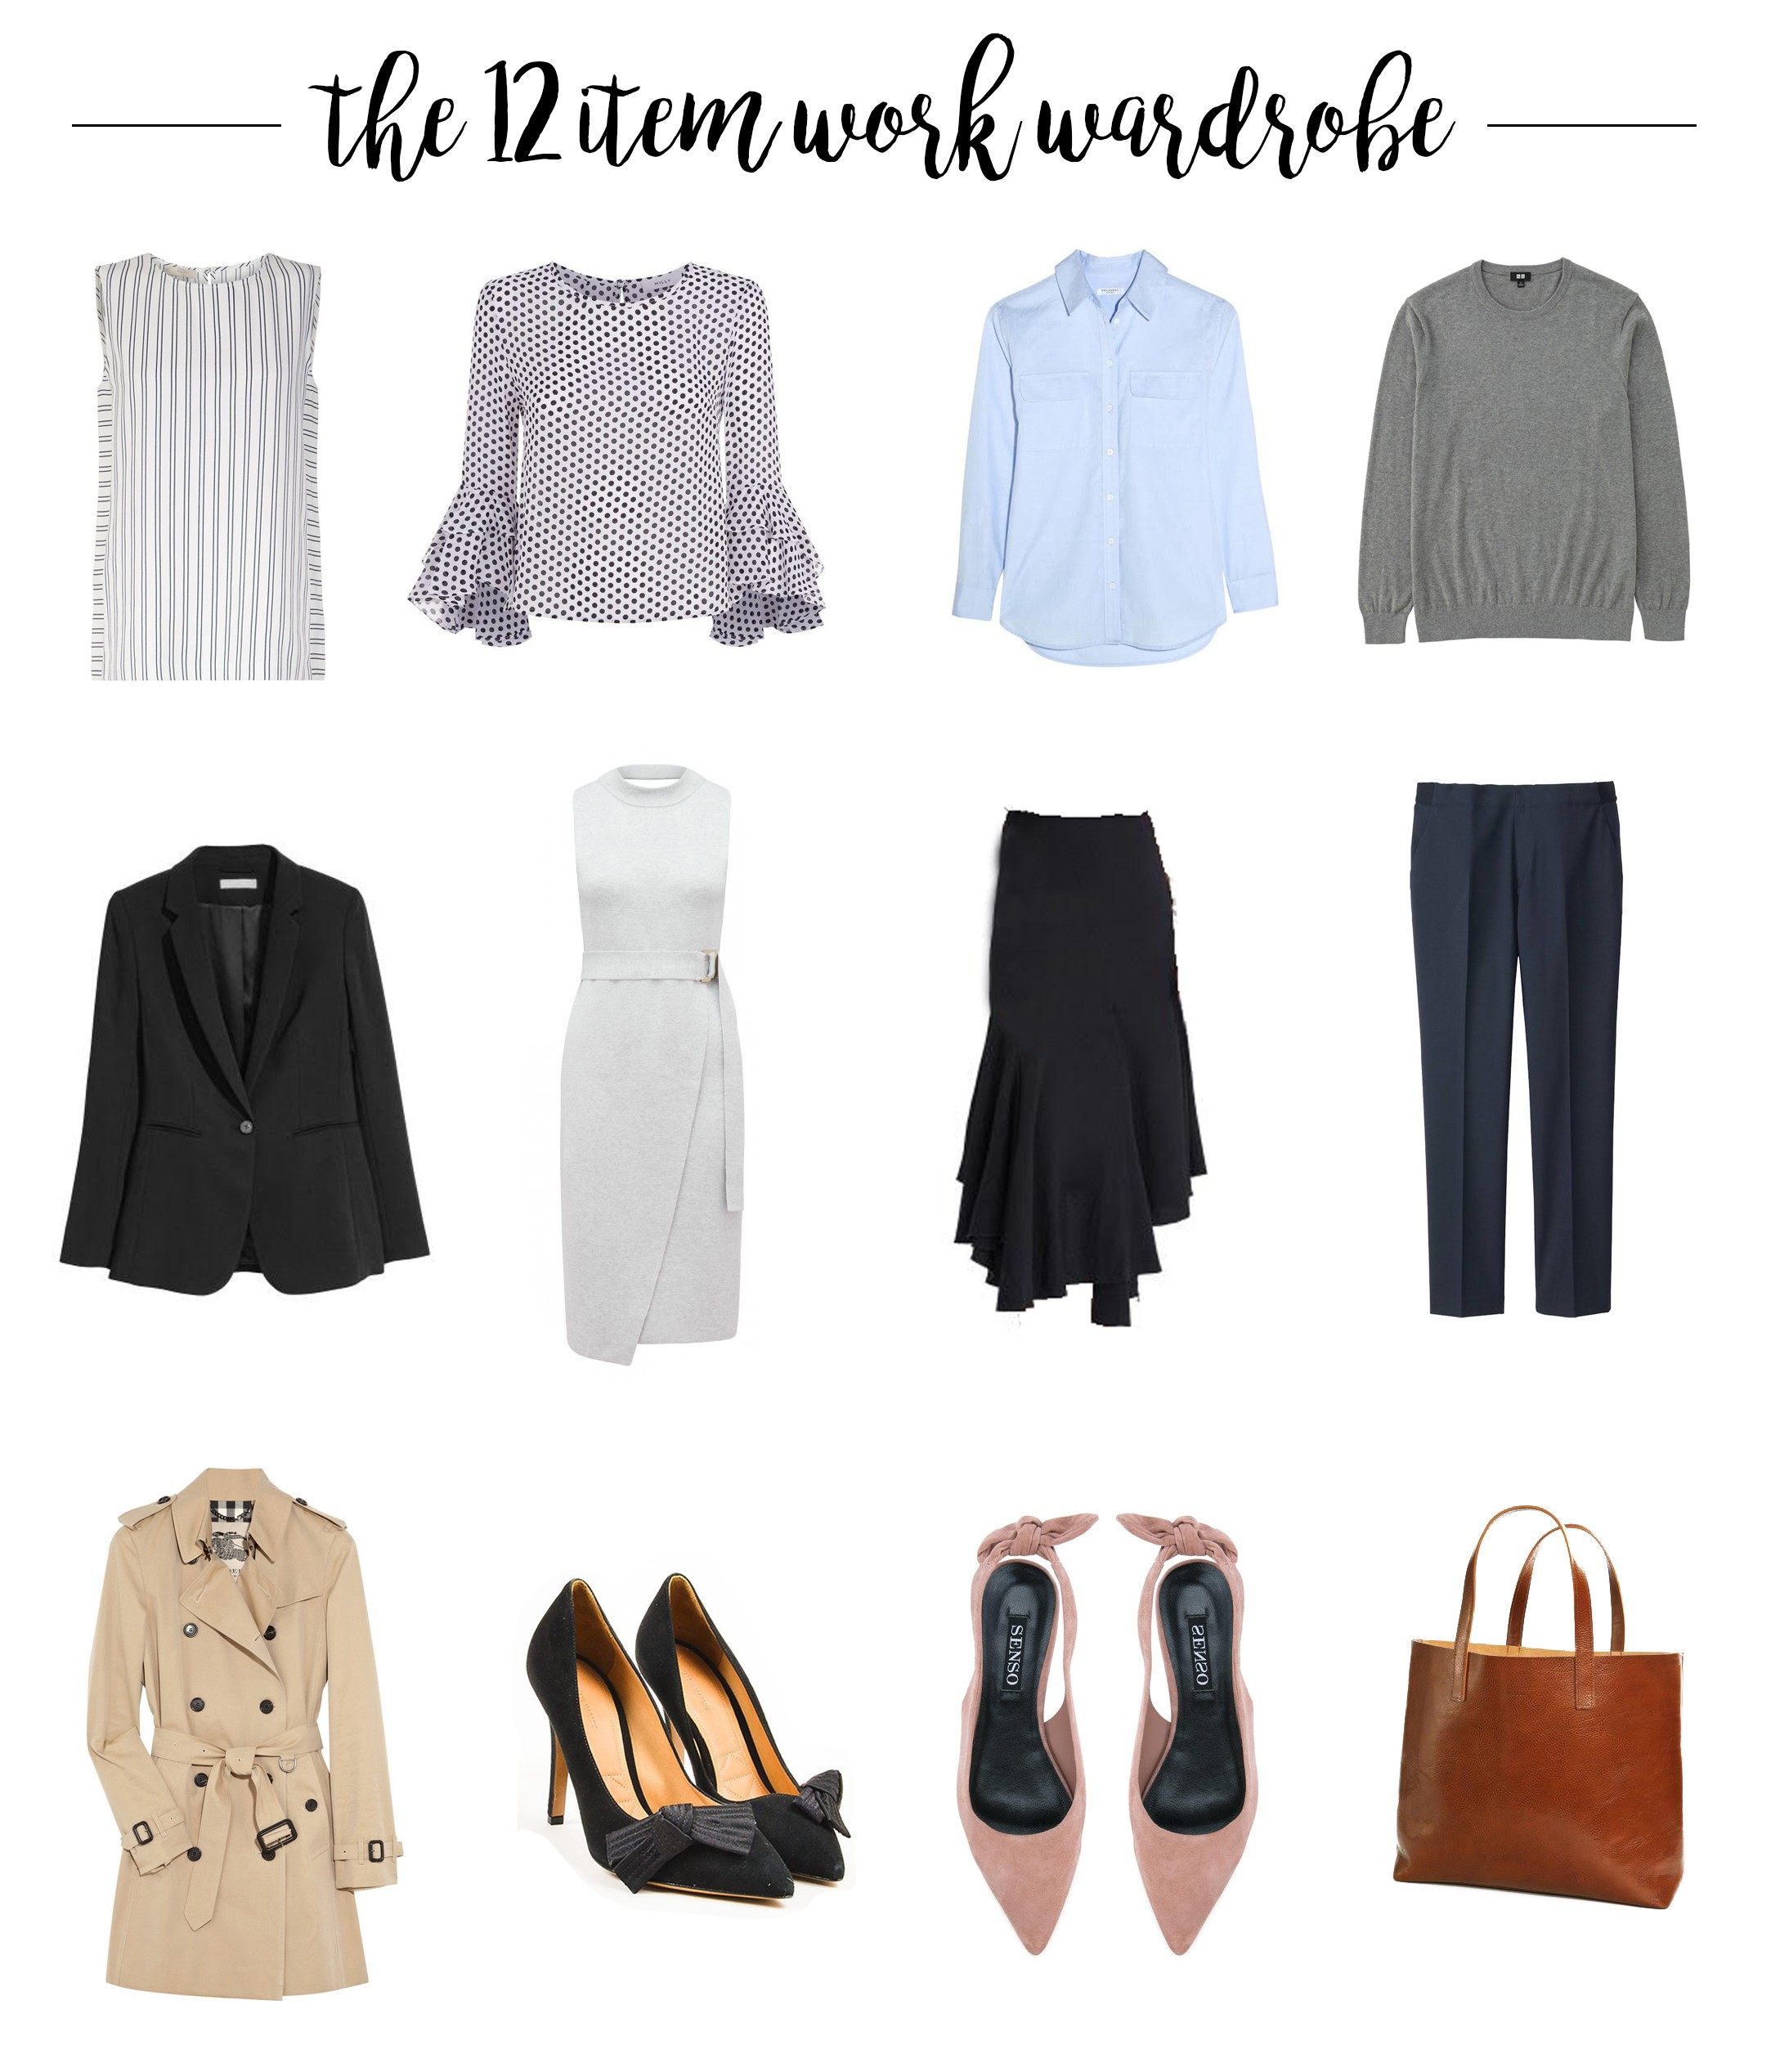 1bcbd59480d1d ... 12 items (and why I think you need them for your work wardrobe)